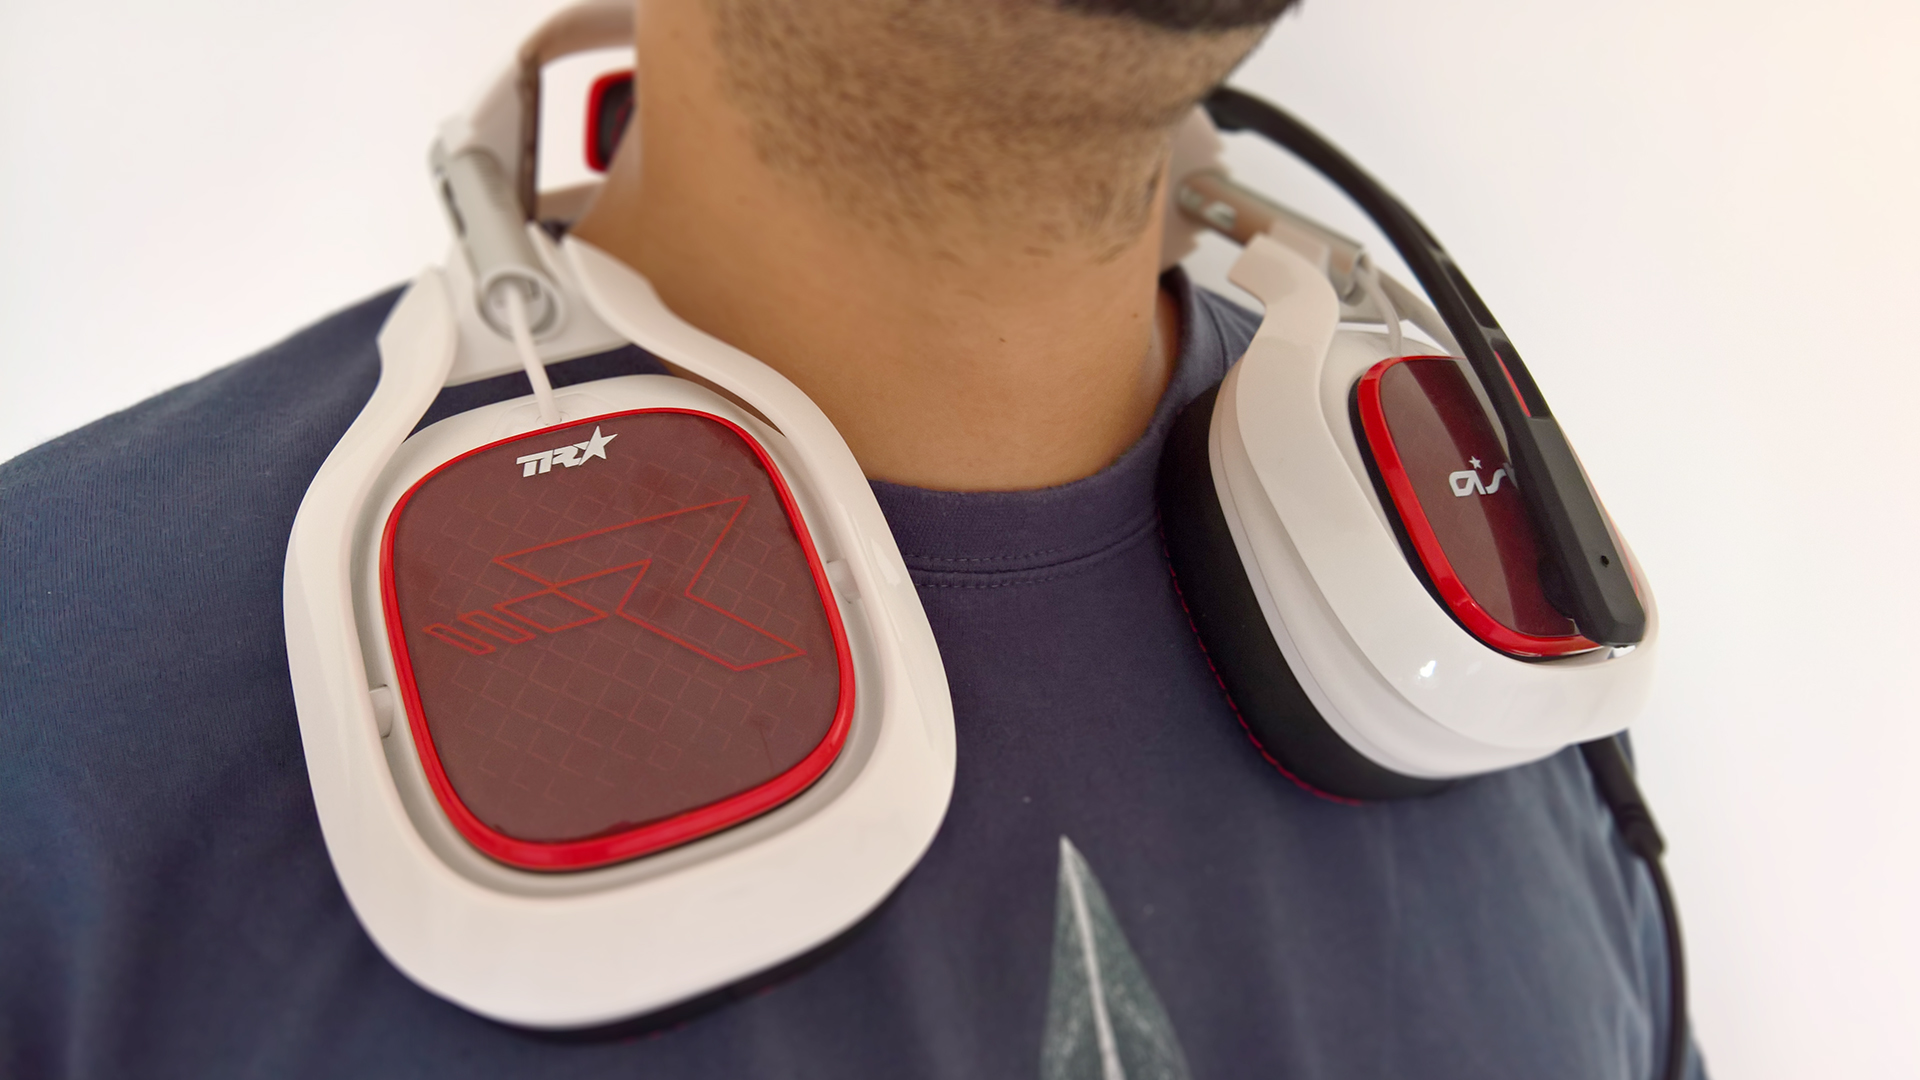 a40-tr-headset-mixamp-pro-tr-vgprofessional-review-10